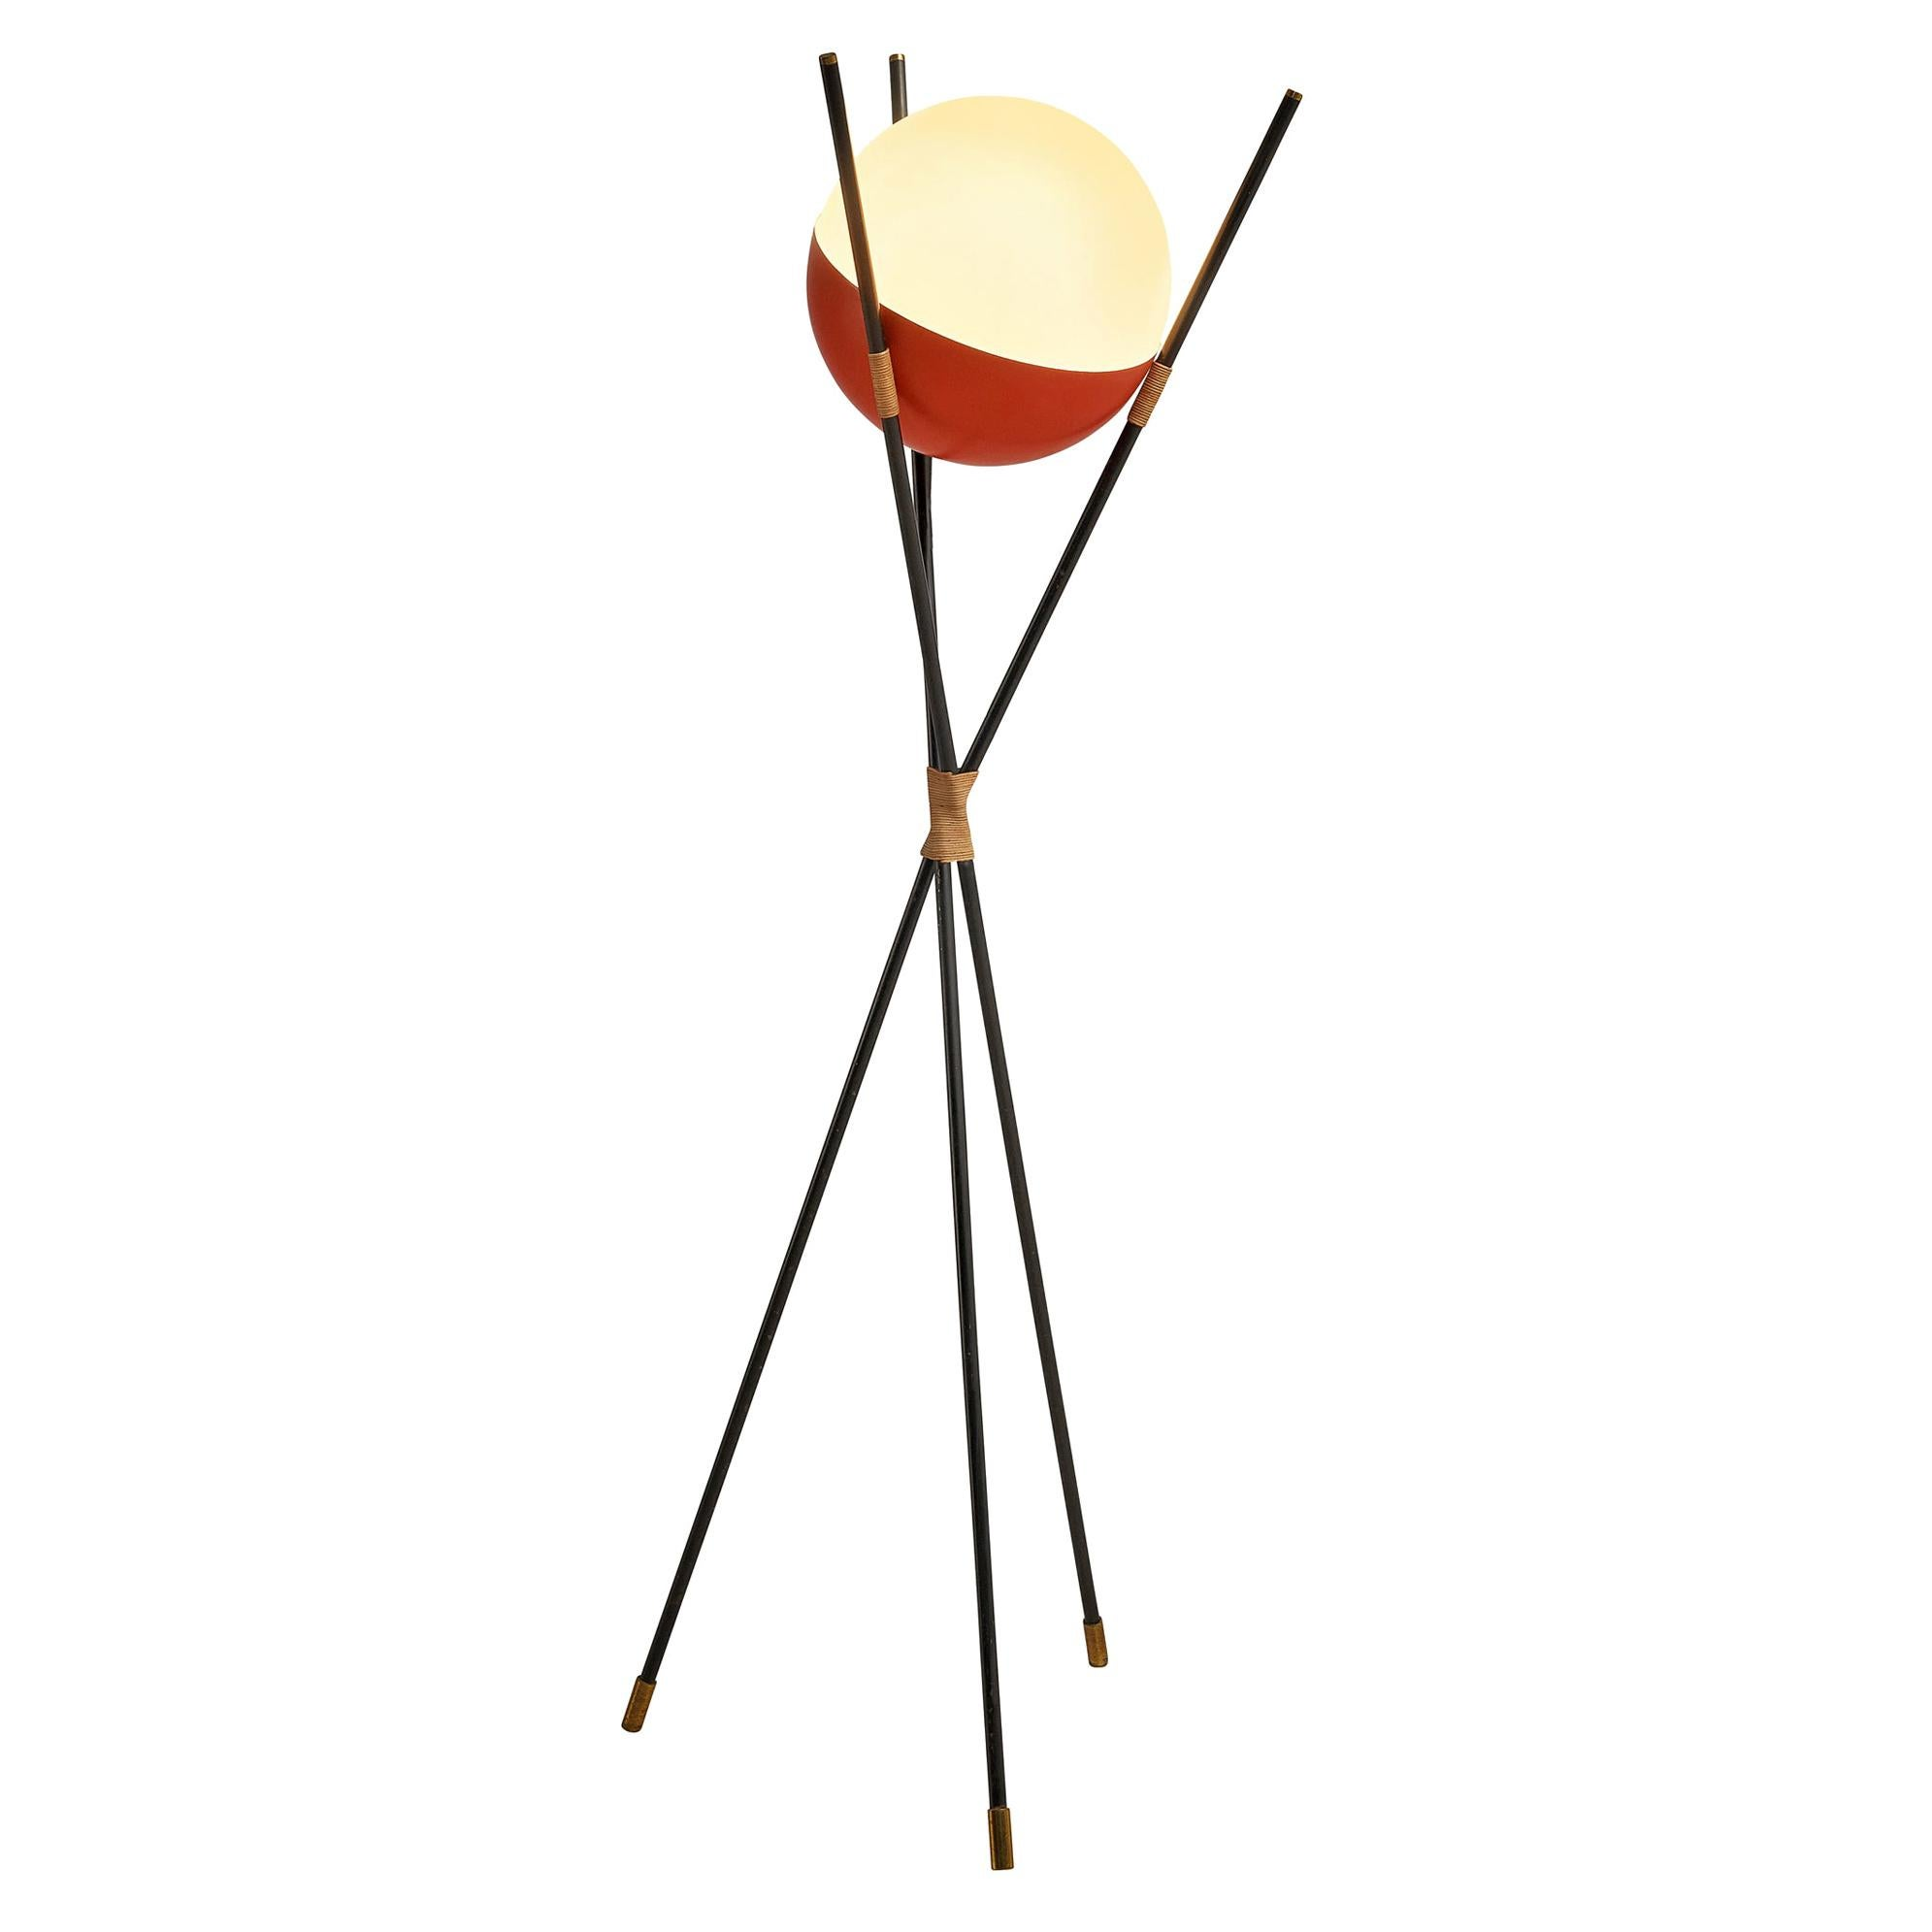 Angelo Brotto for Esperia Floor Lamp in Metal, Opaline Glass and Cane